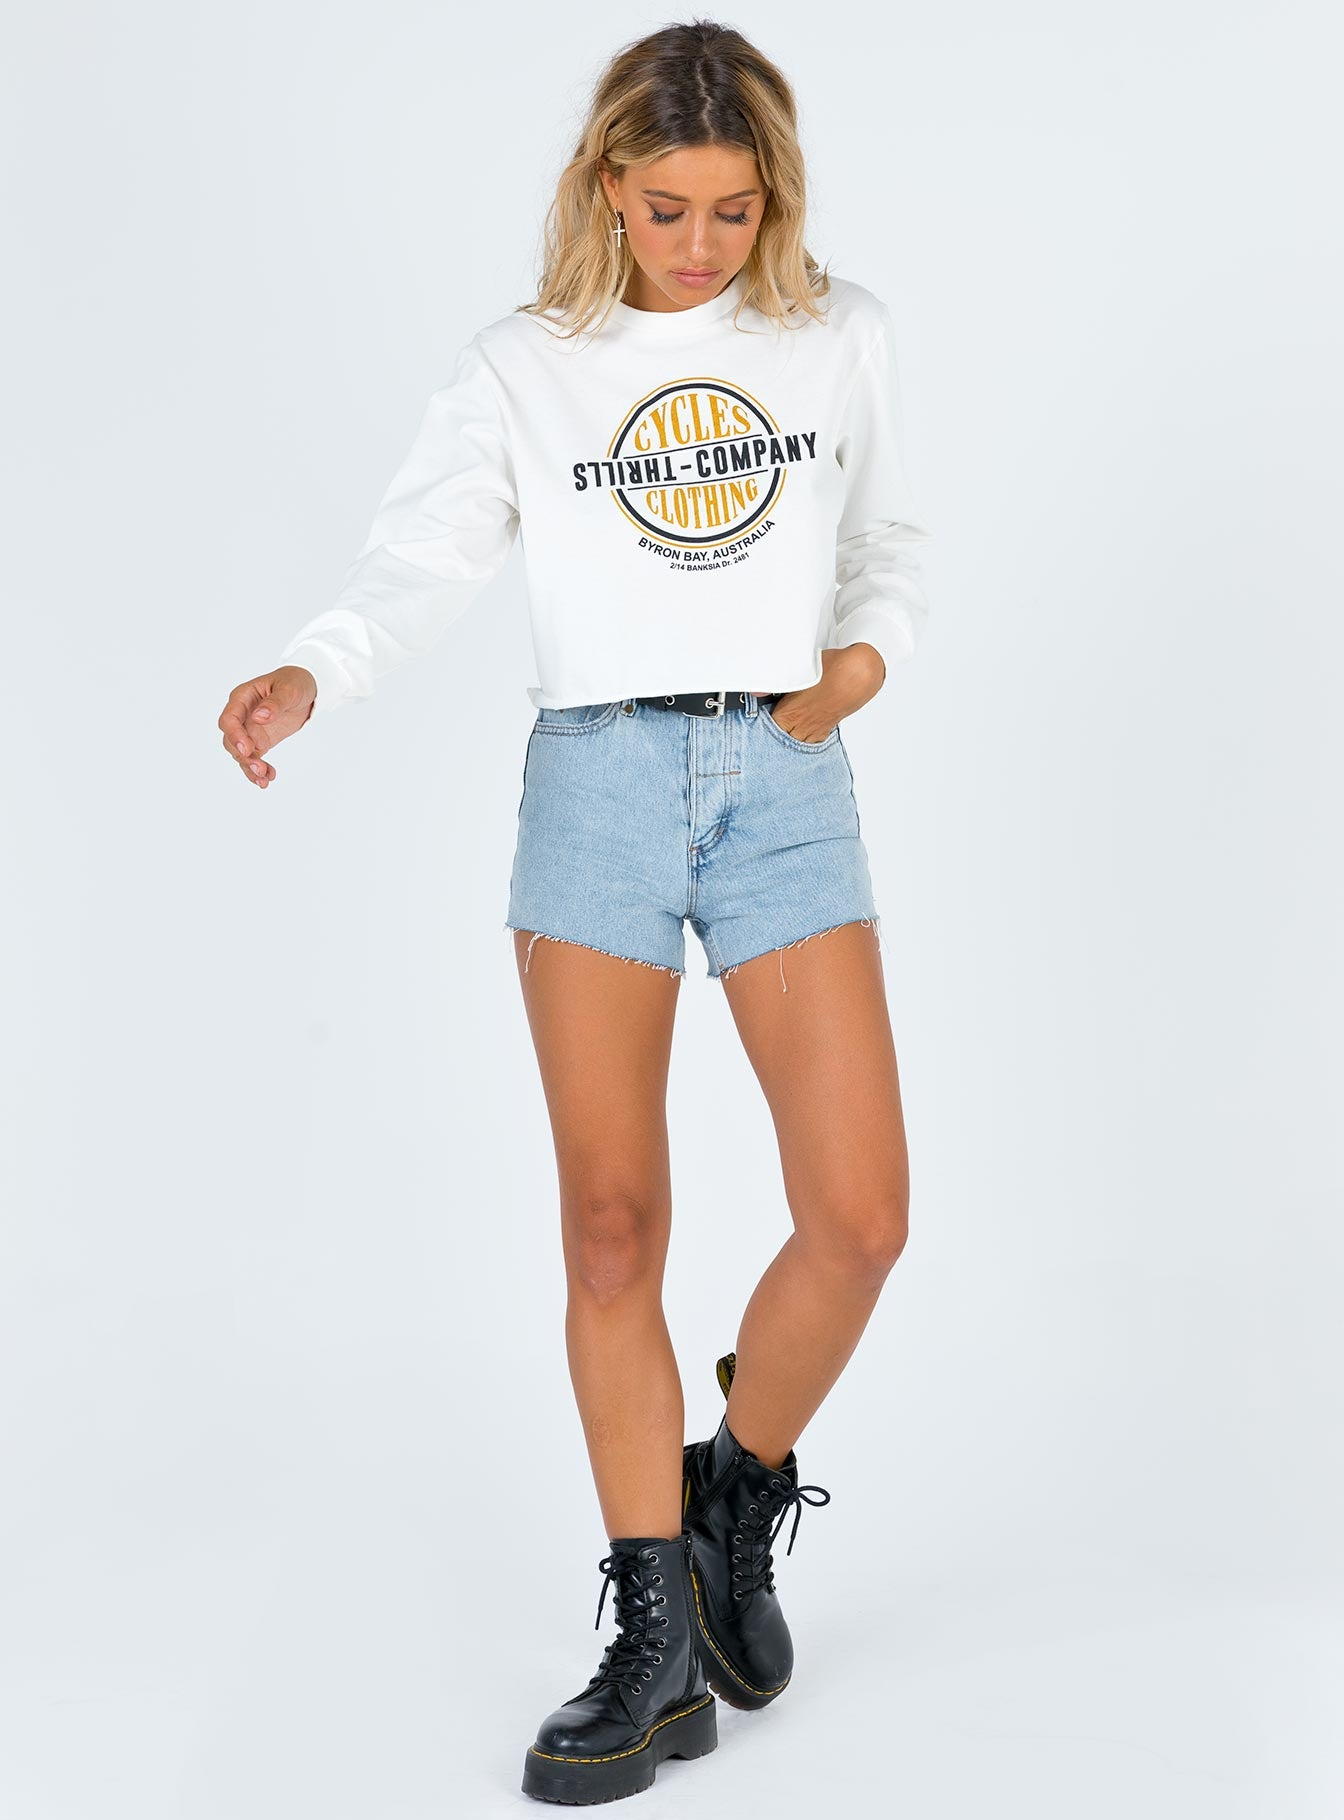 Thrills Cycles & Clothing Merch Crop LS Dirty White